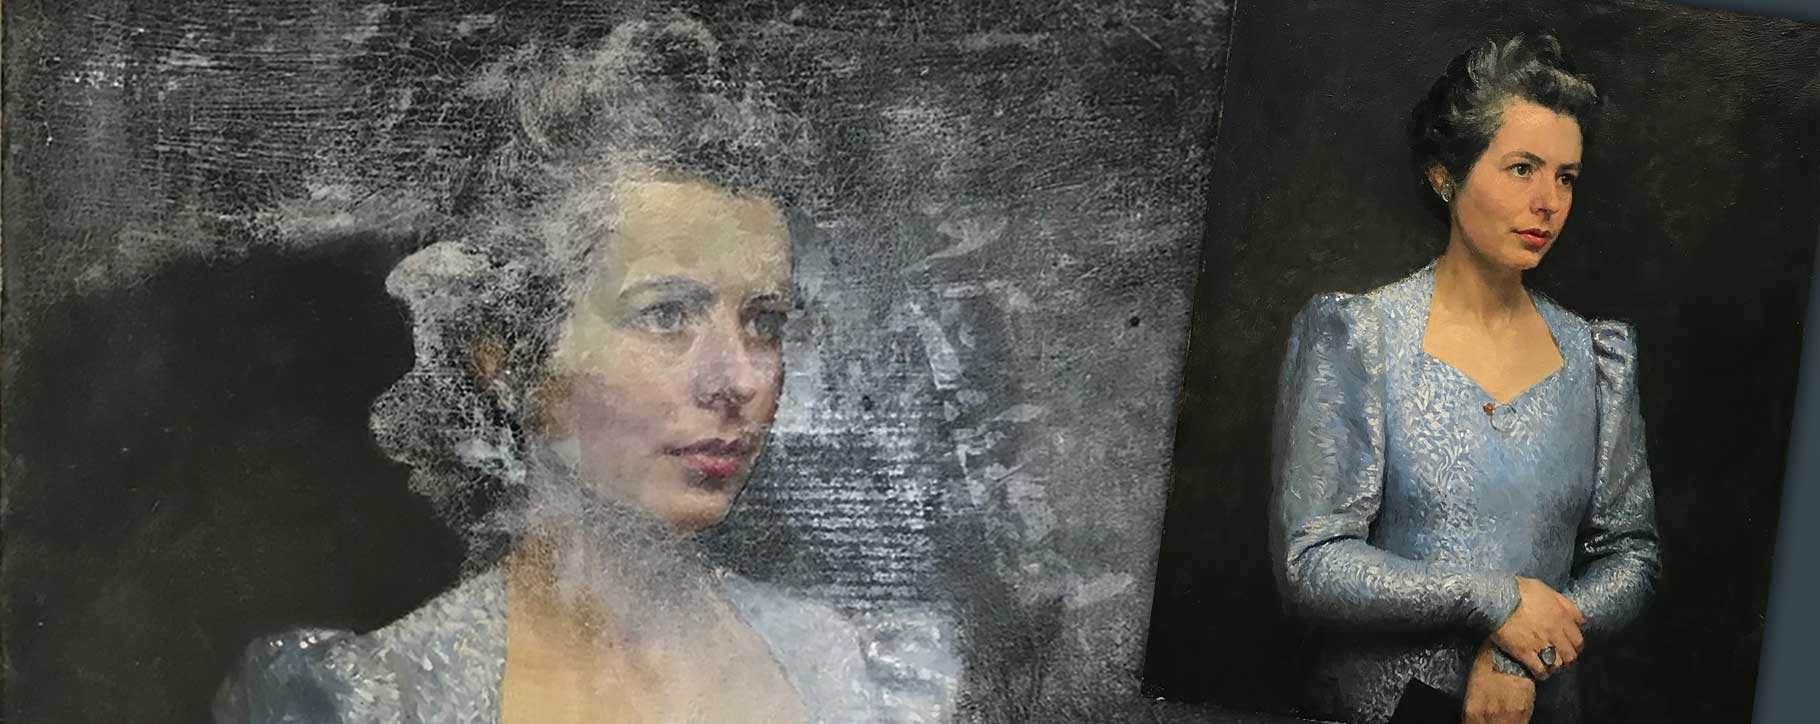 Water damaged oil painting portrait before and after restoration